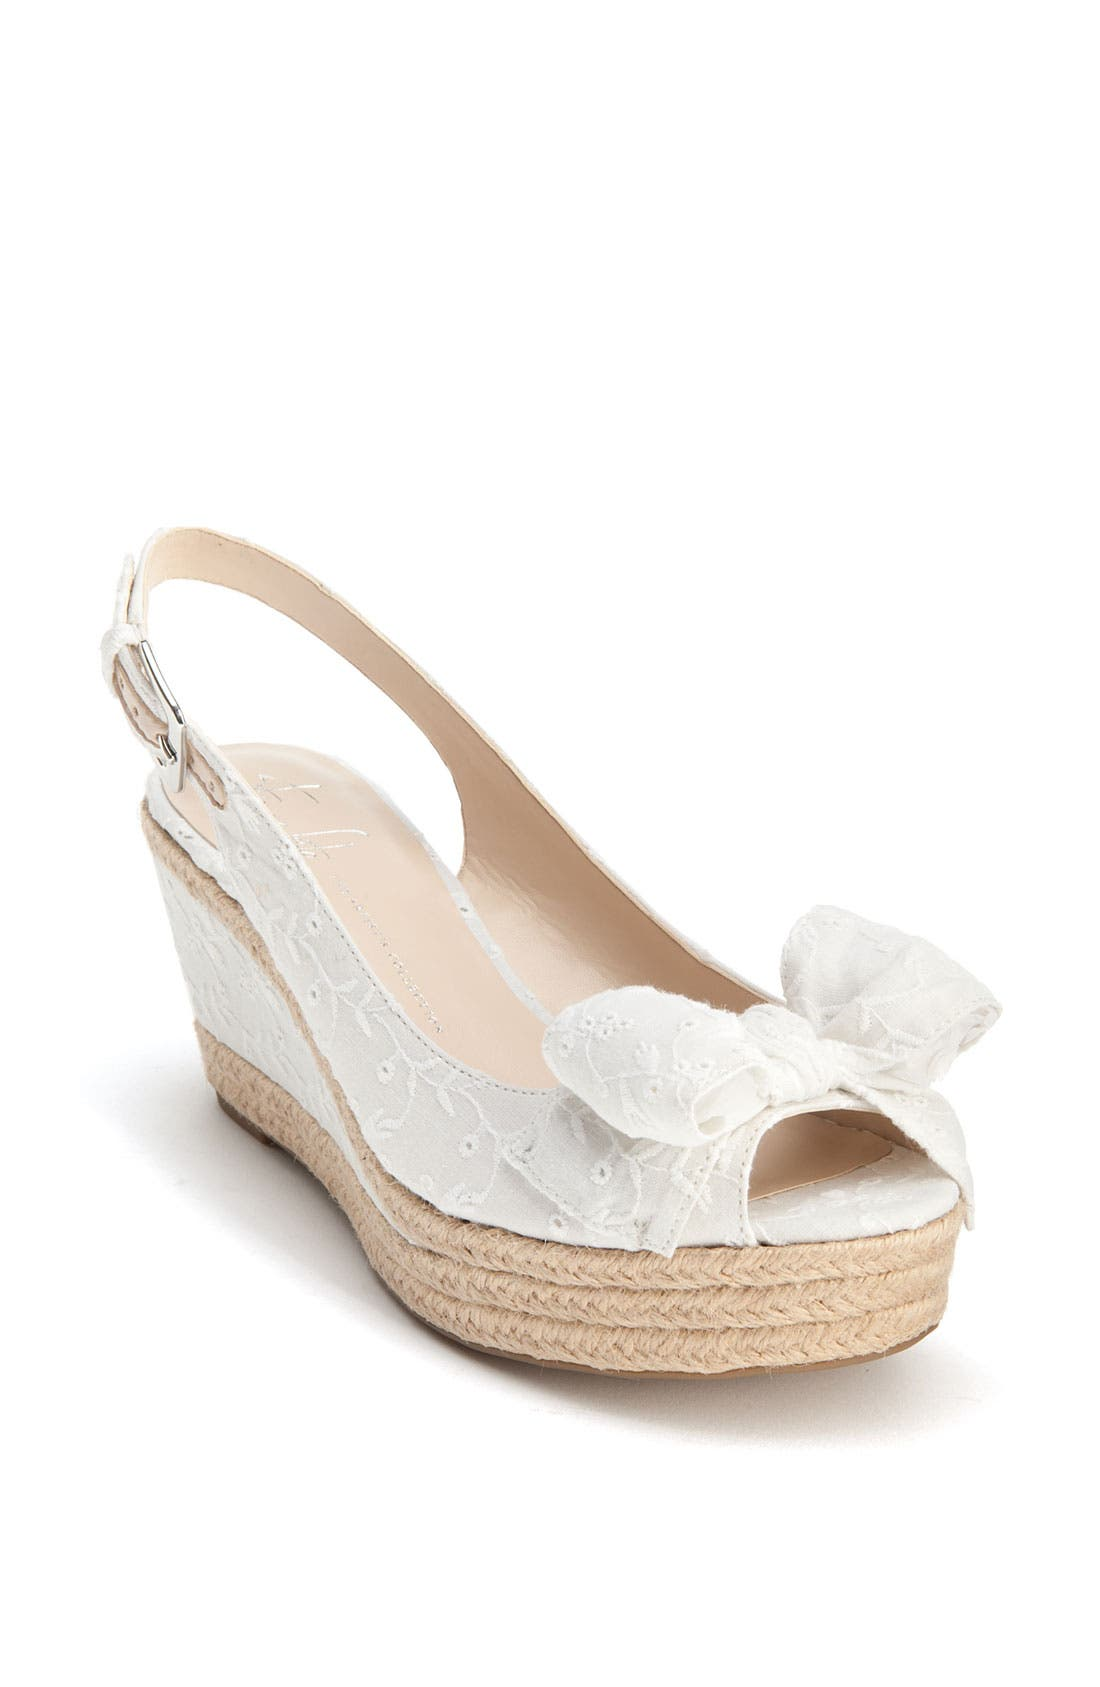 Alternate Image 1 Selected - Franco Sarto 'Olympia' Espadrille Sandal